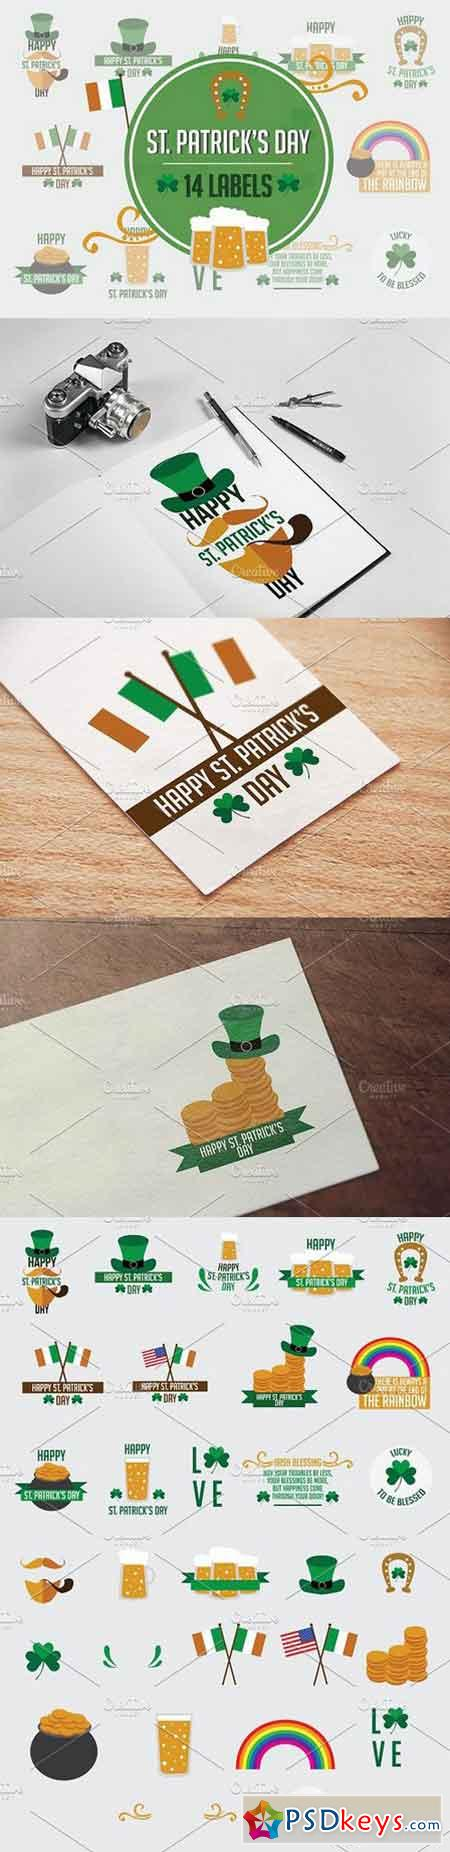 14 Labels St. Patrick's Day 1297169